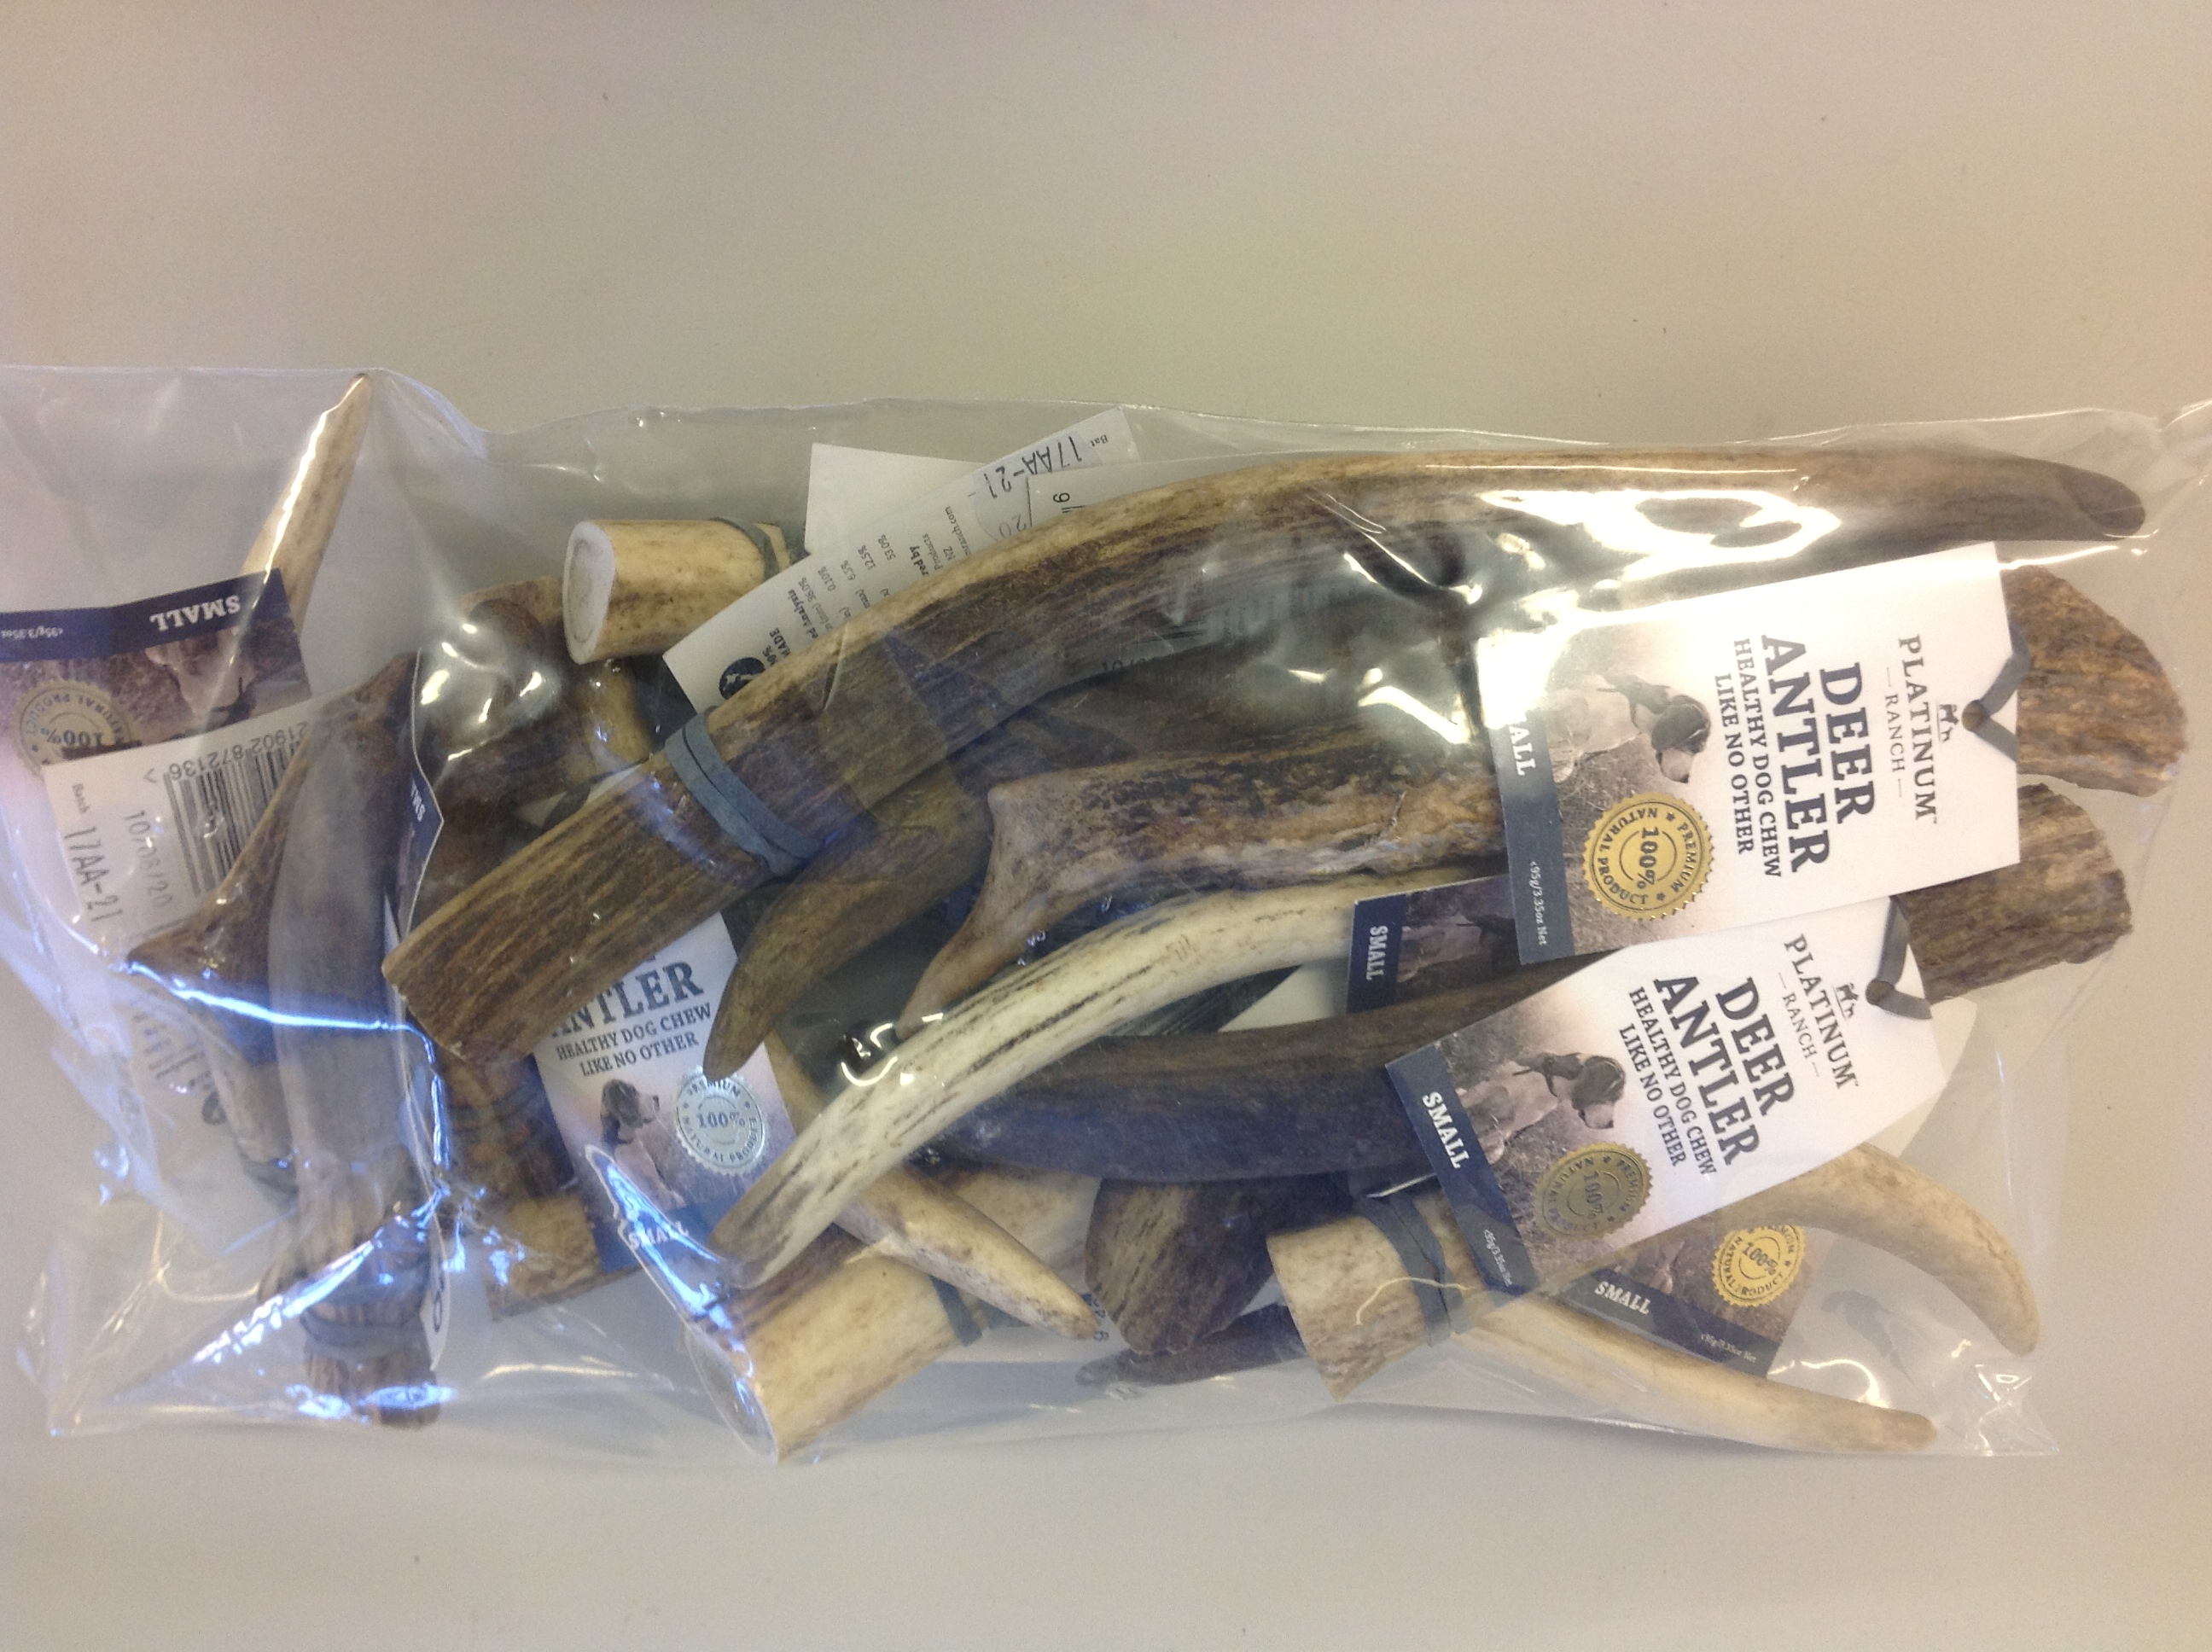 Platinum Ranch Small Deer Antlers 1kg DOG TREAT